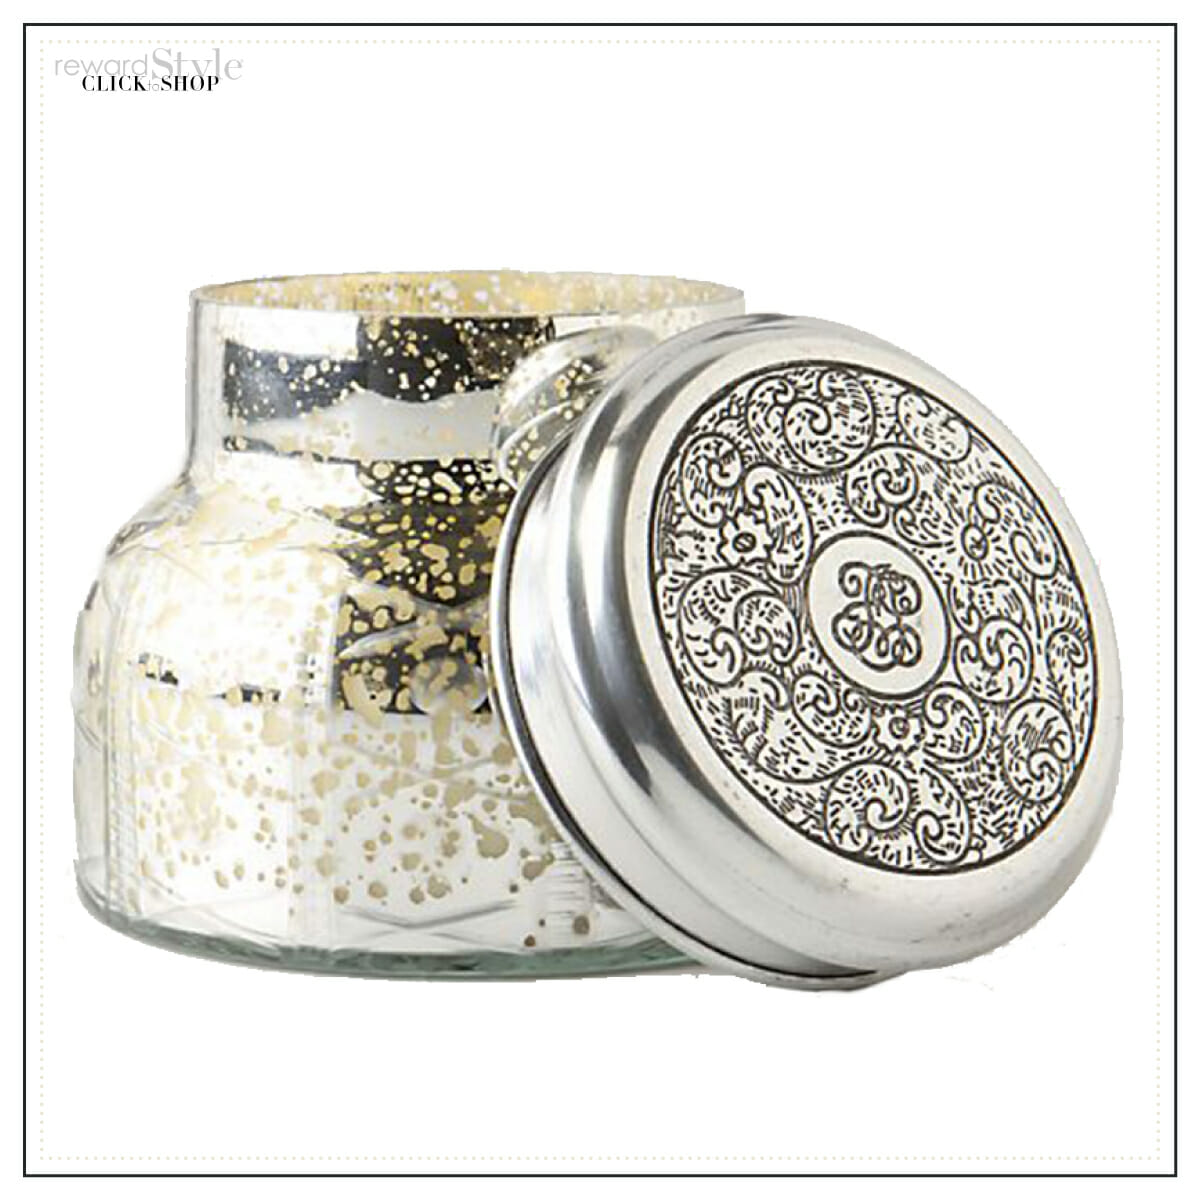 Anthropologie home fragrance candle